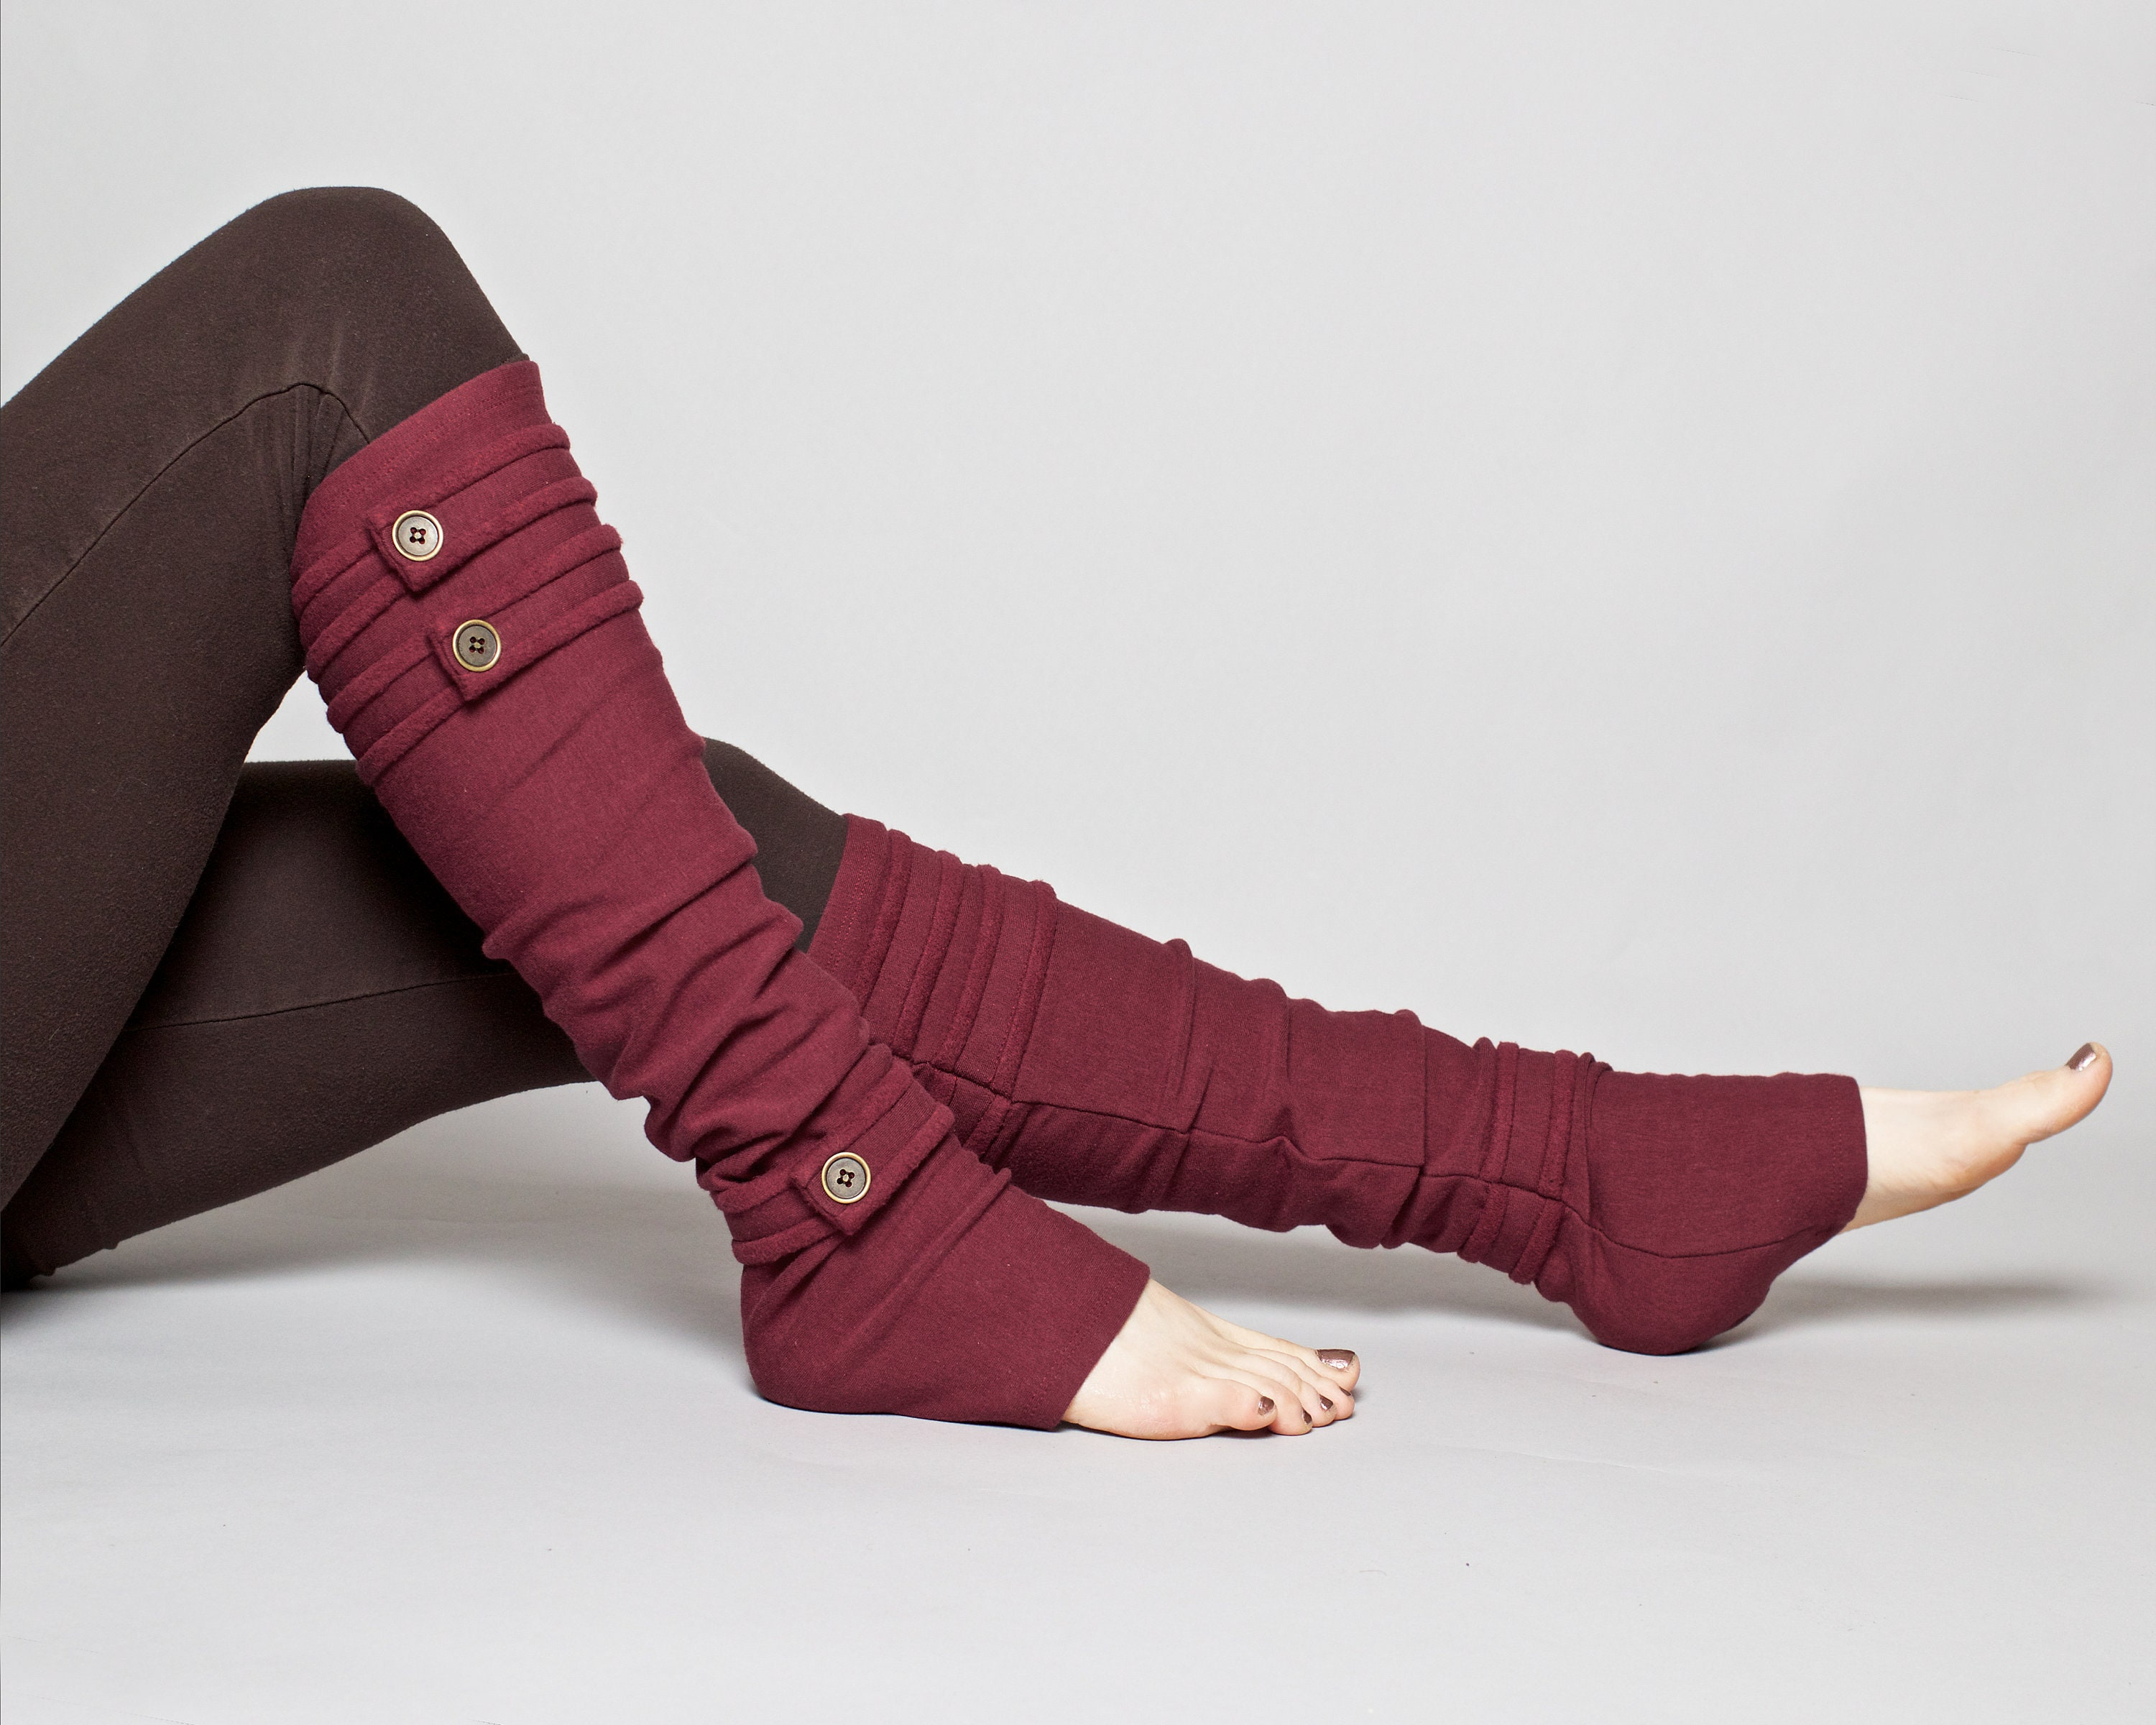 Spats, Gaiters, Puttees – Vintage Shoes Covers Womens Leg Warmers - Bamboo Fleece Made in The Usa $52.00 AT vintagedancer.com